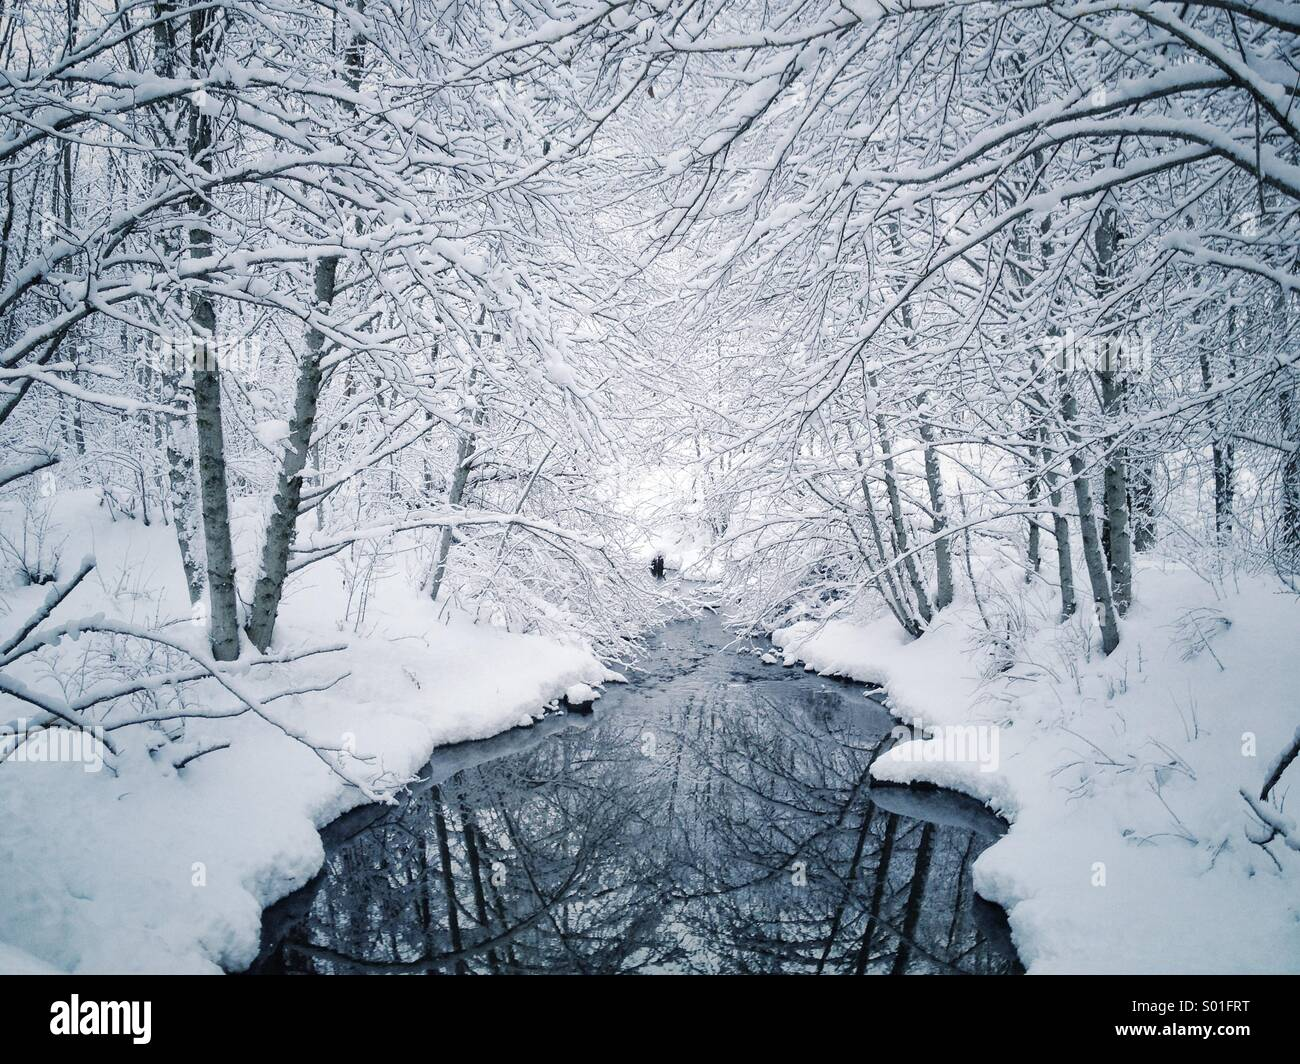 Snow covered trees along creek in winter wonderland landscape. - Stock Image